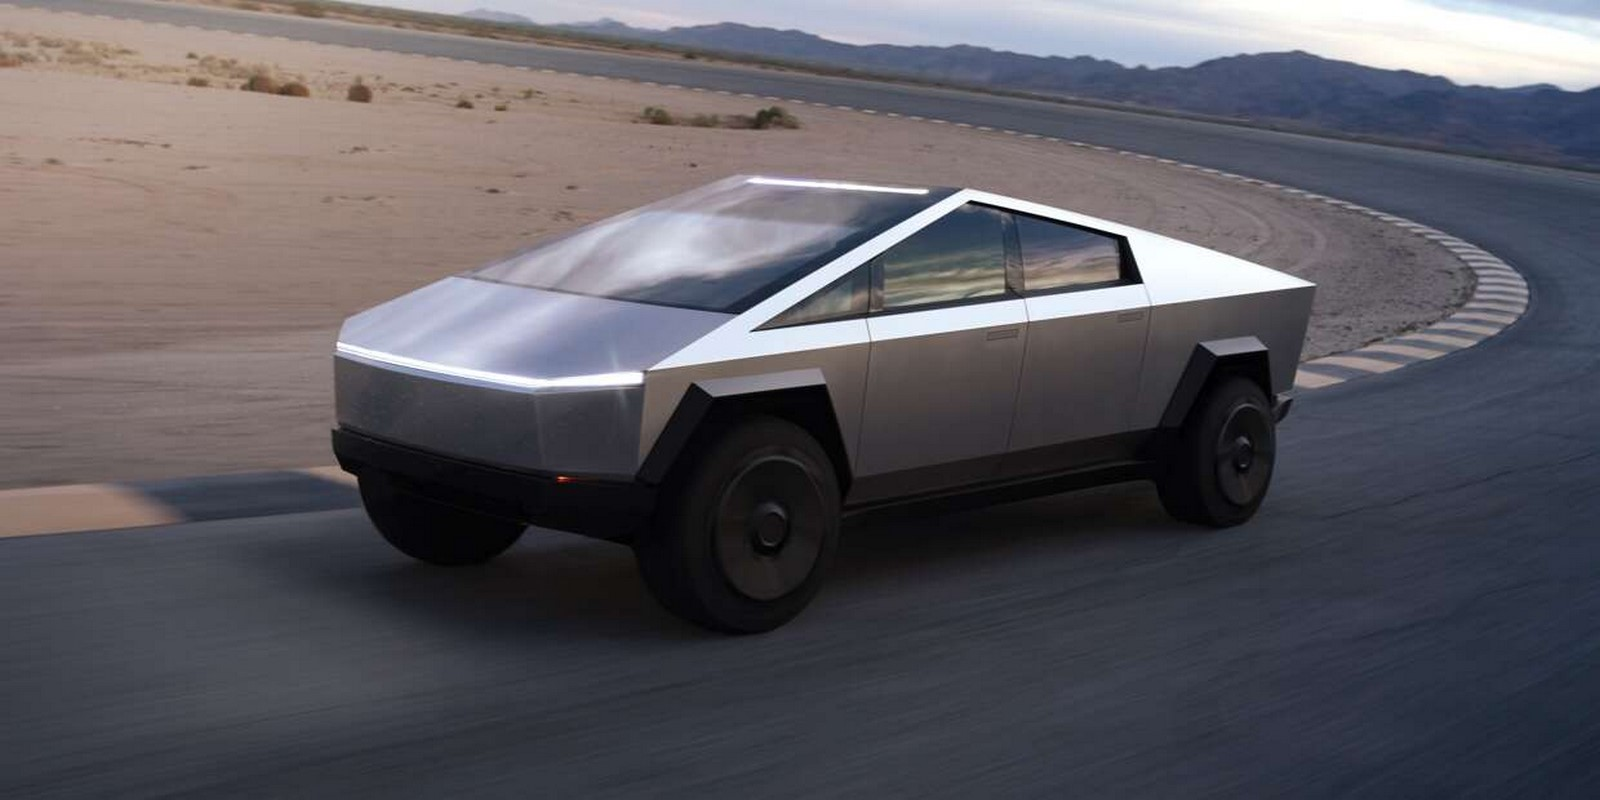 Top 10 Automobile Designs Inspired by Sci-Fi Movies and TV Sheet4